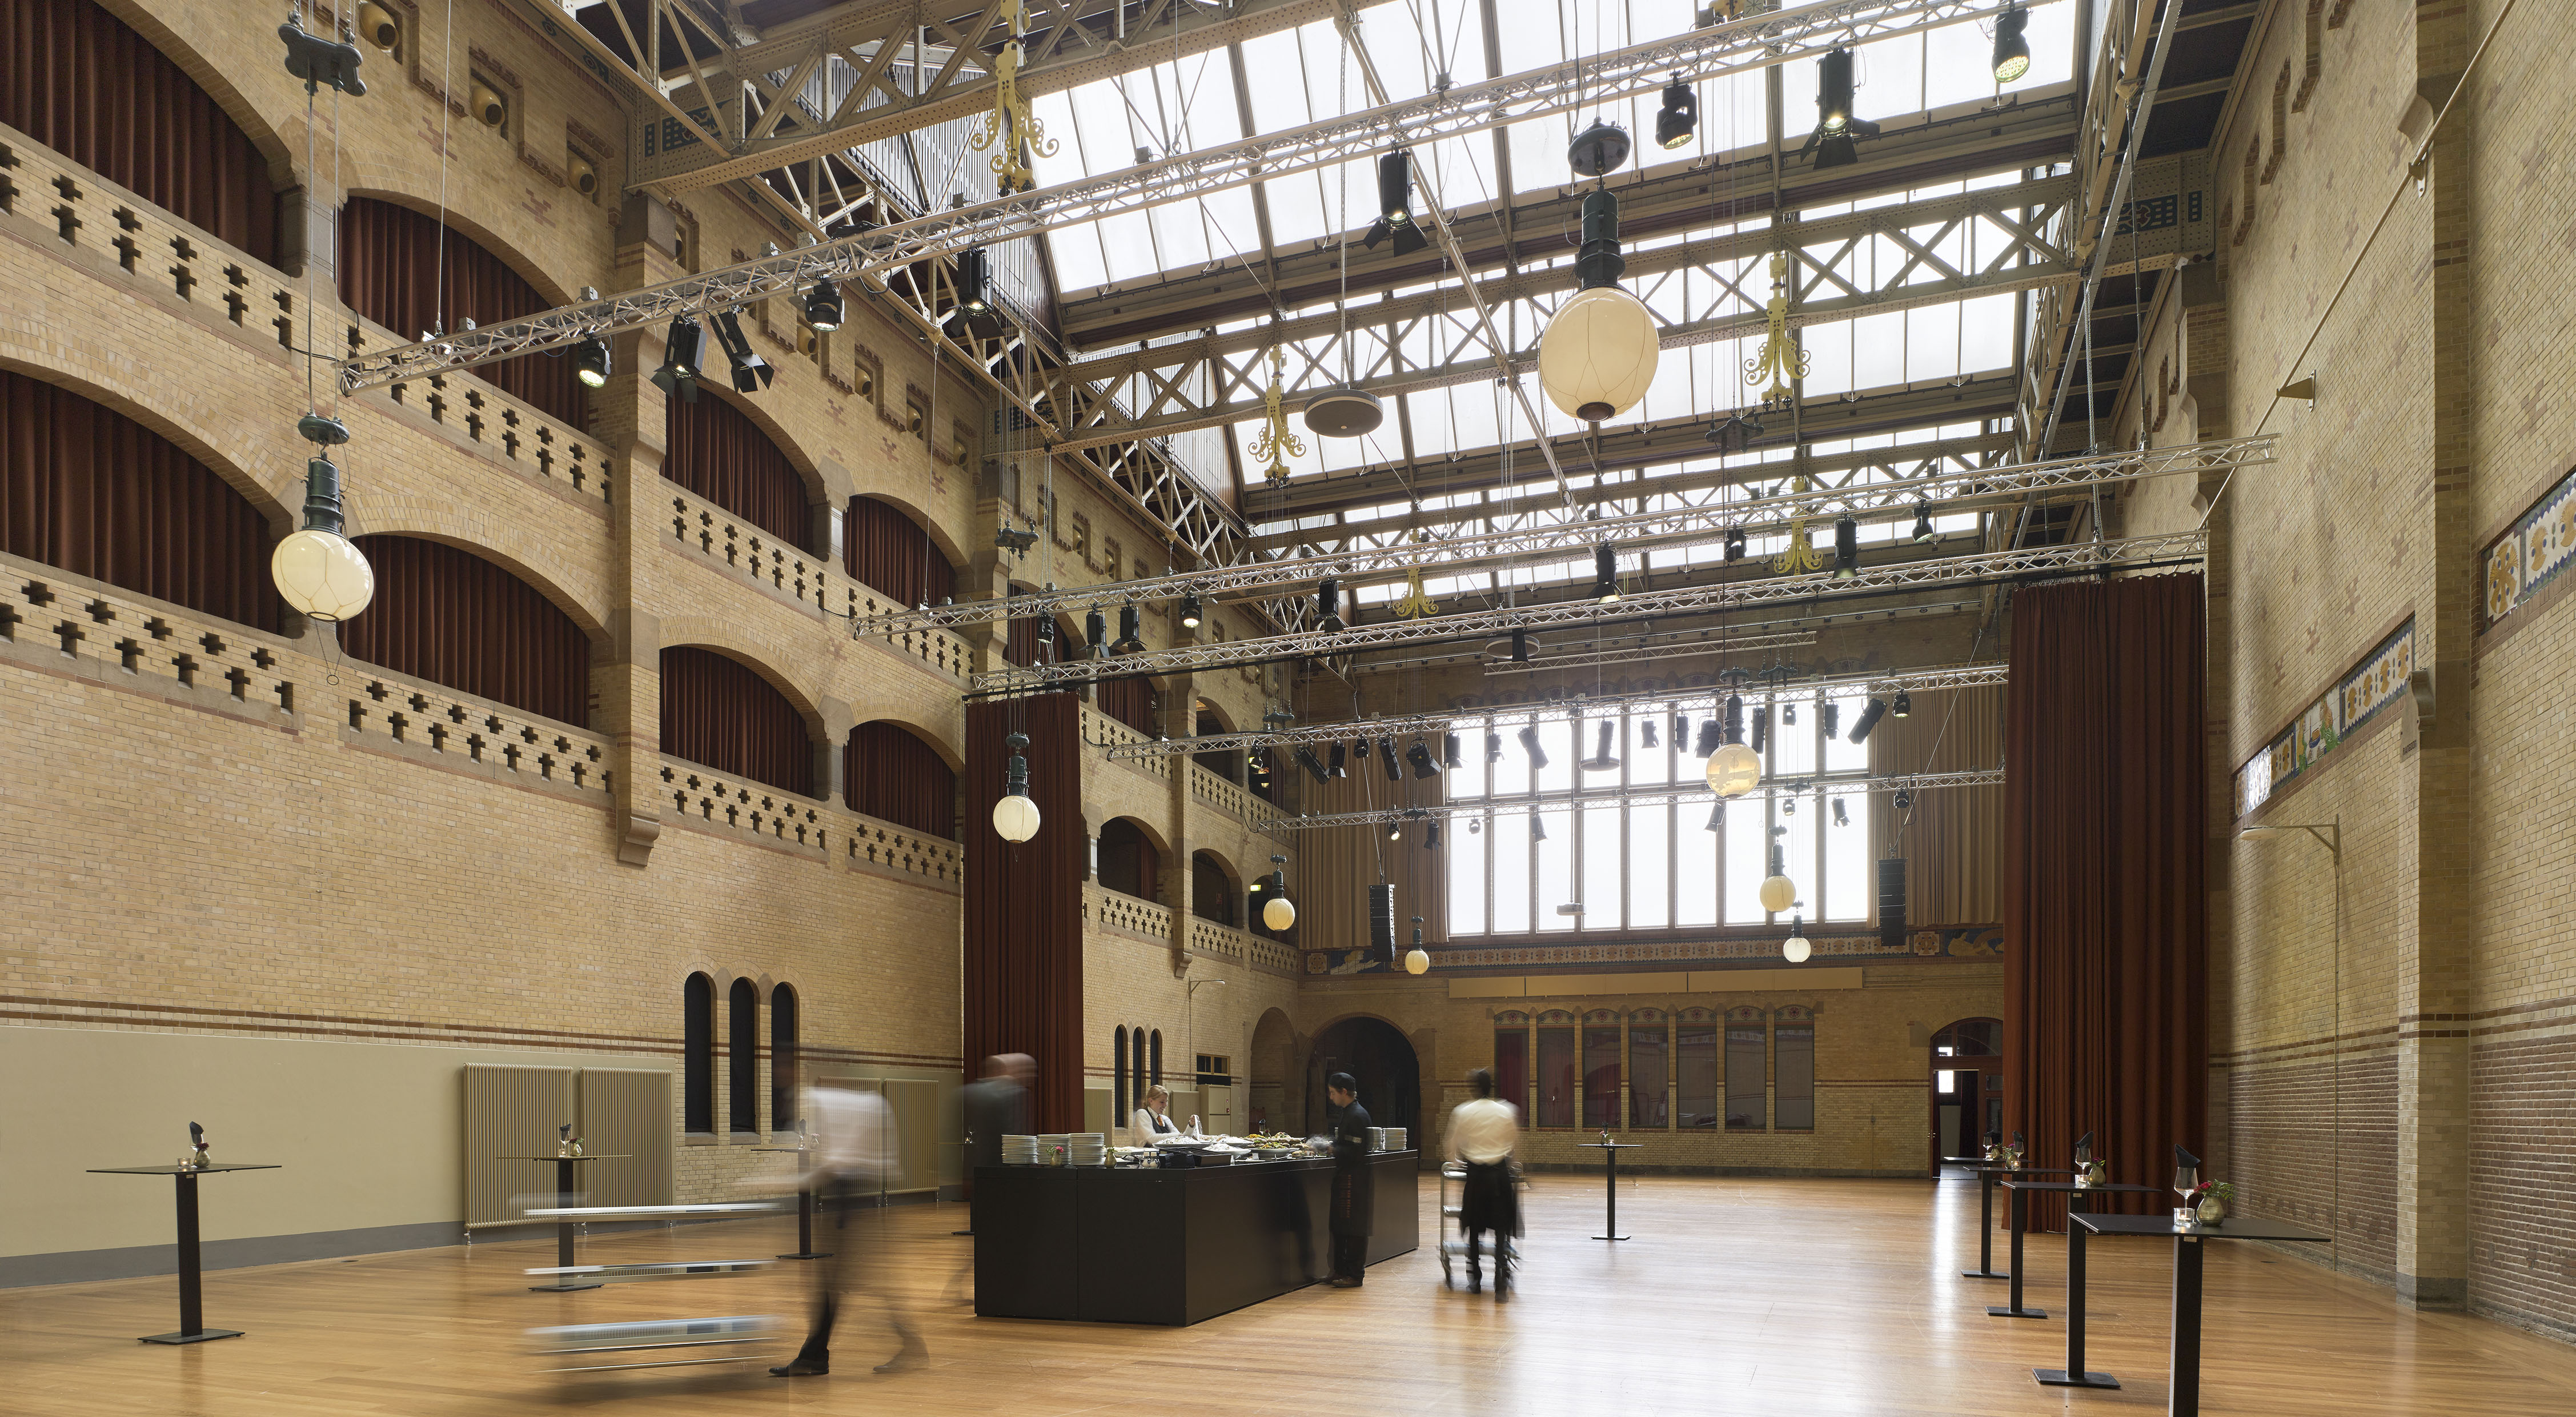 Beurs van berlage bierman henket interieur de architect for Interieur architect vacature